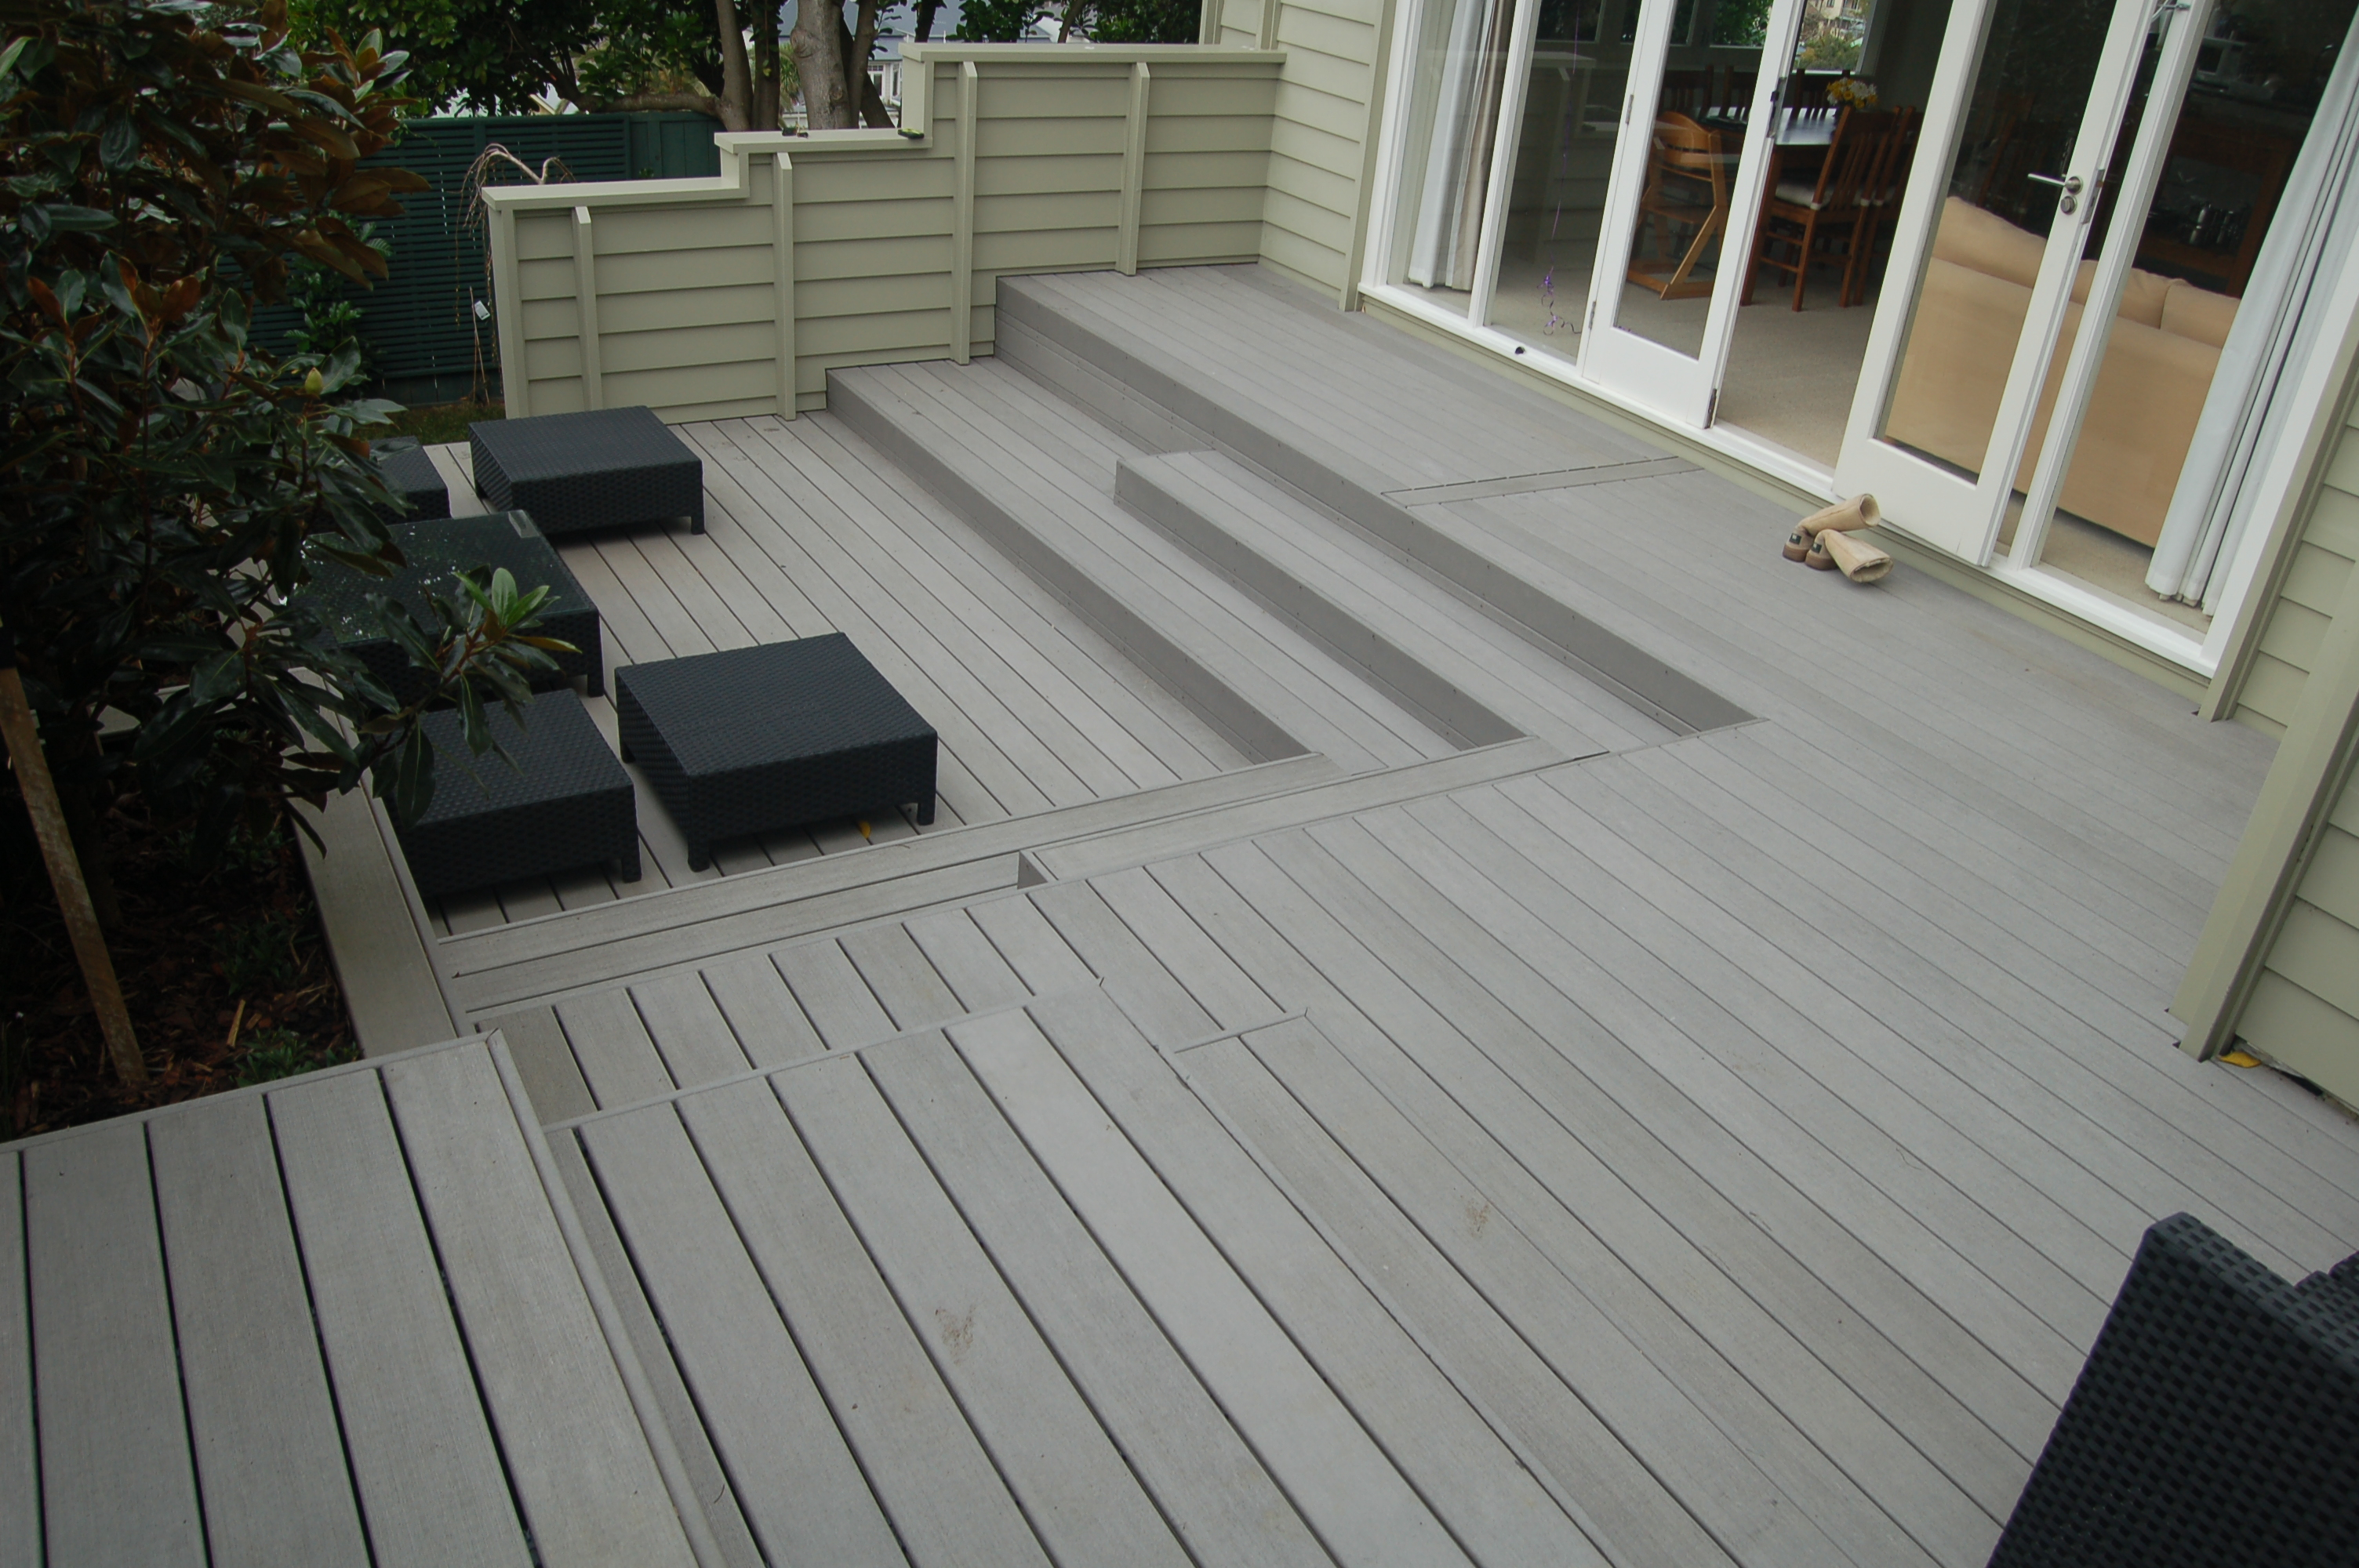 Wood Deck Wood Deck Overlay Deck Overlay Ideas For Wood Decks Wood within measurements 3008 X 2000